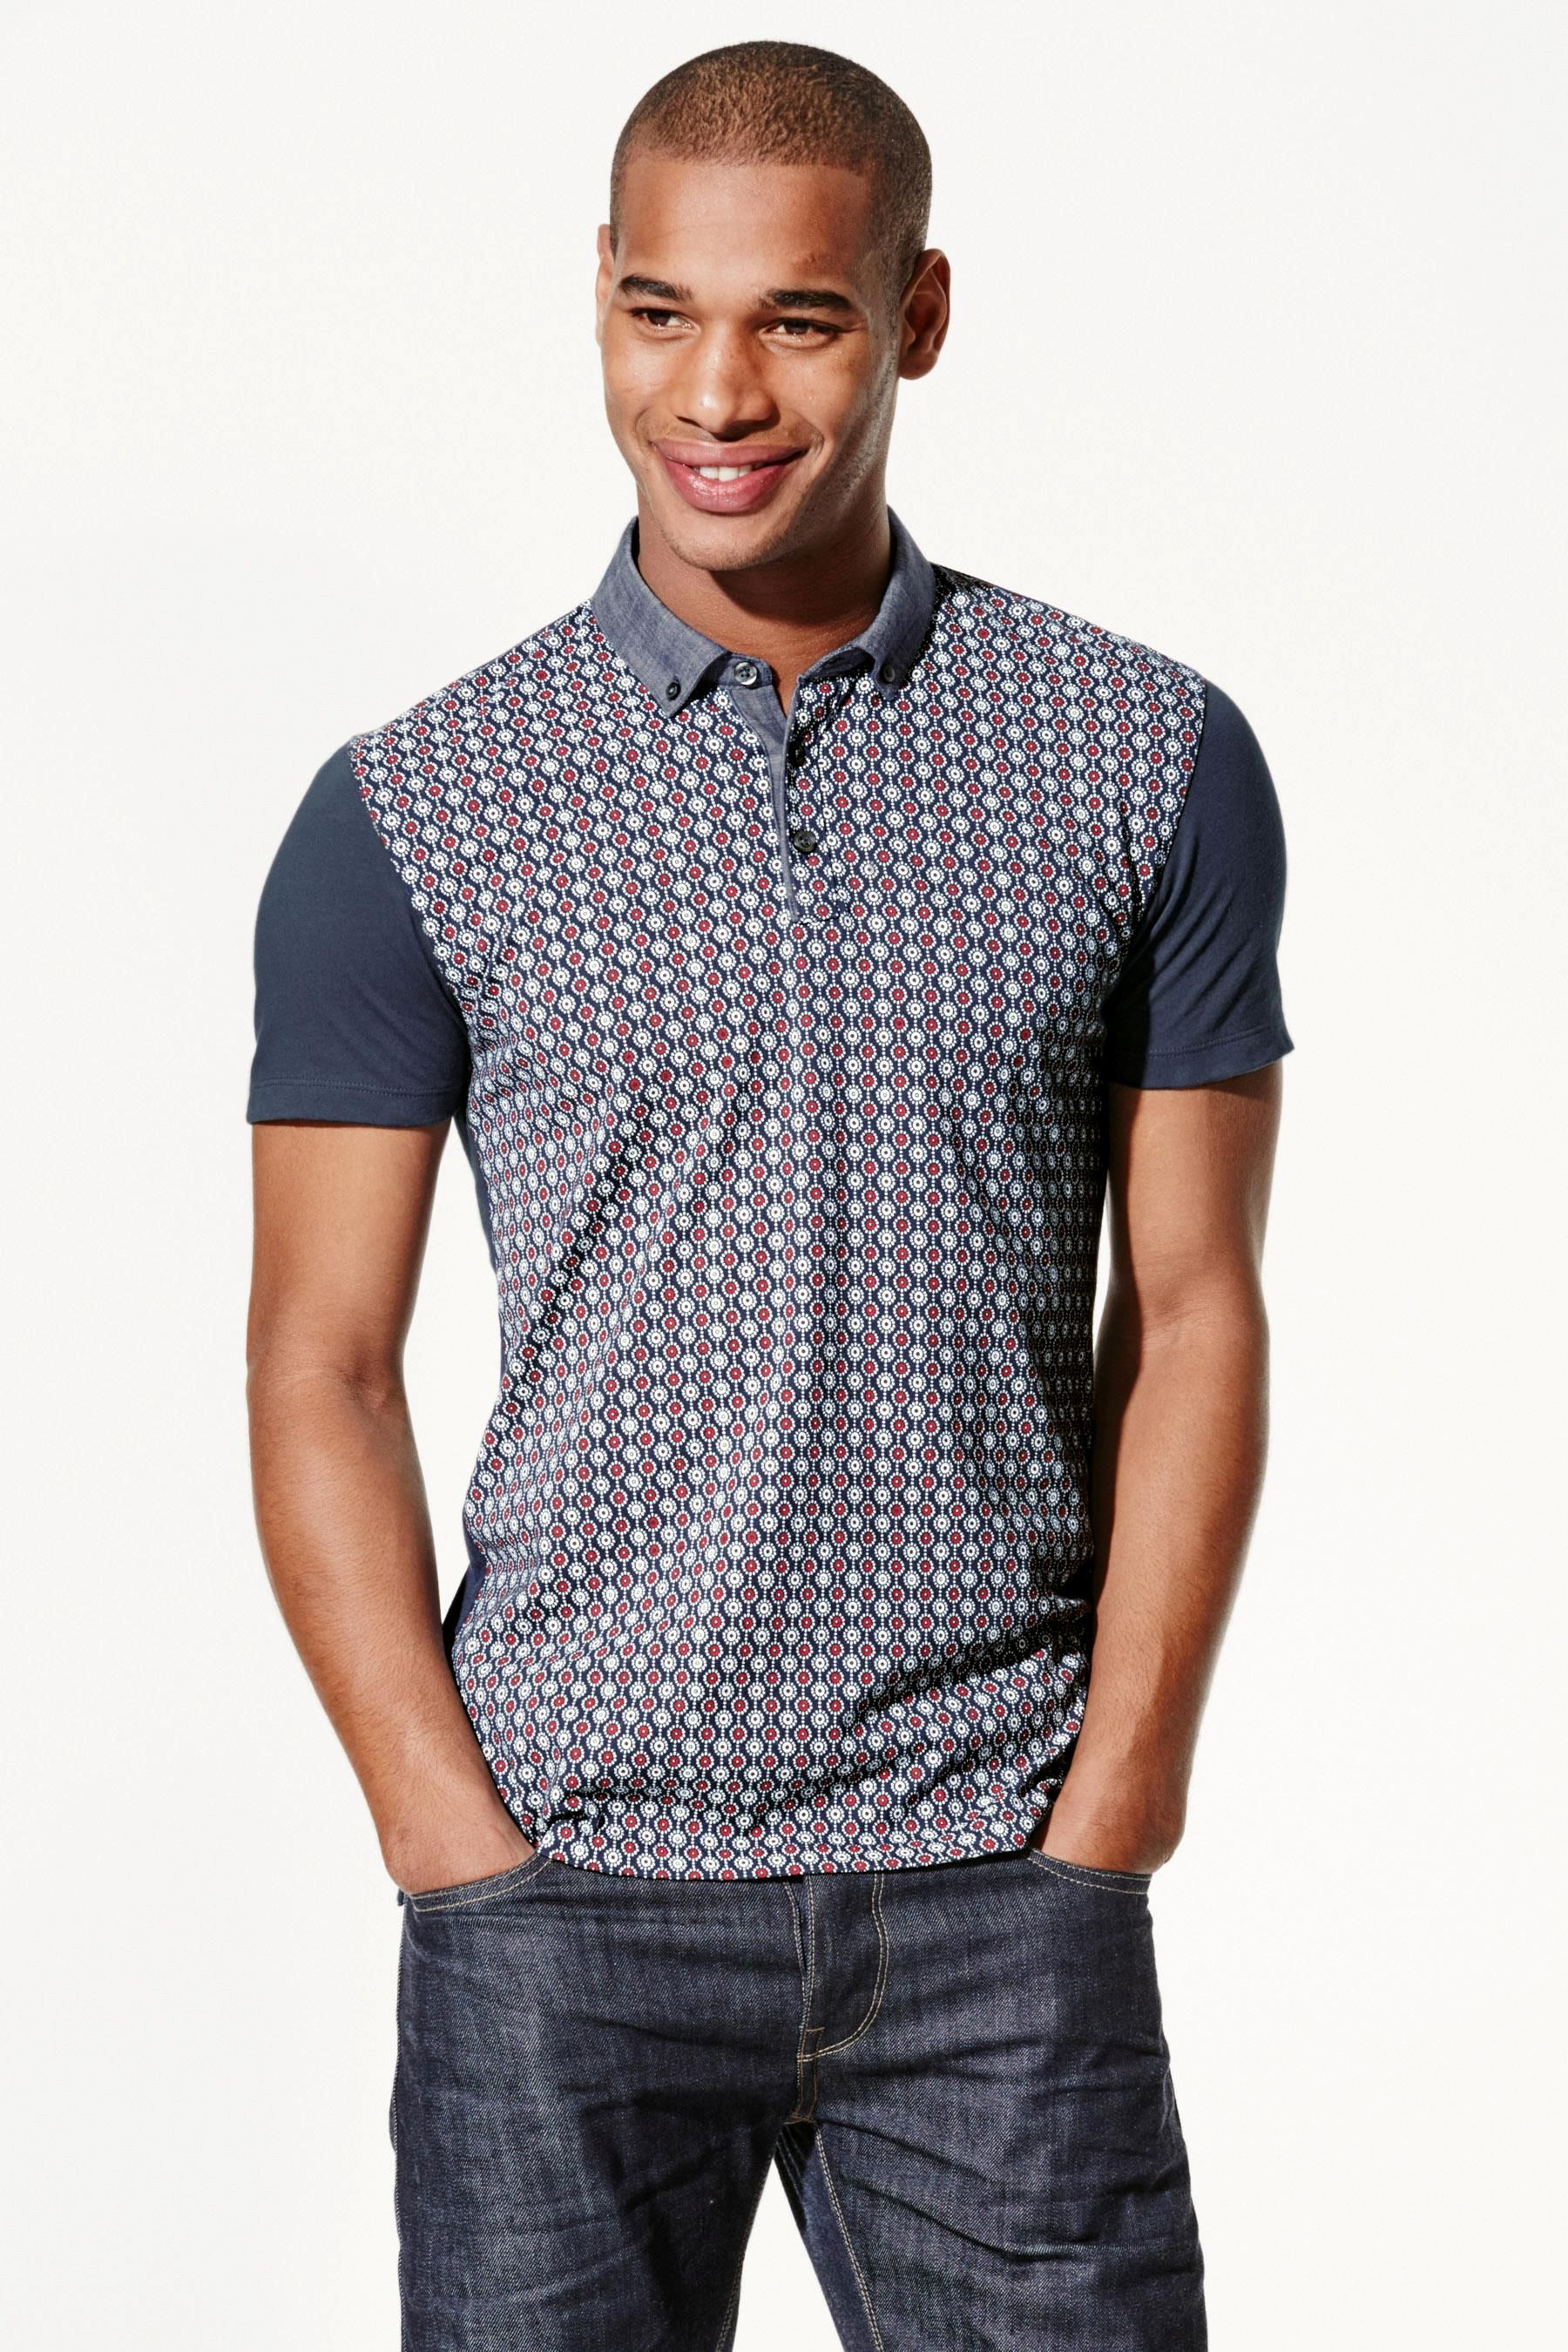 Buy Navy Printed Polo Shirt From The Next Uk Online Shop Bruces